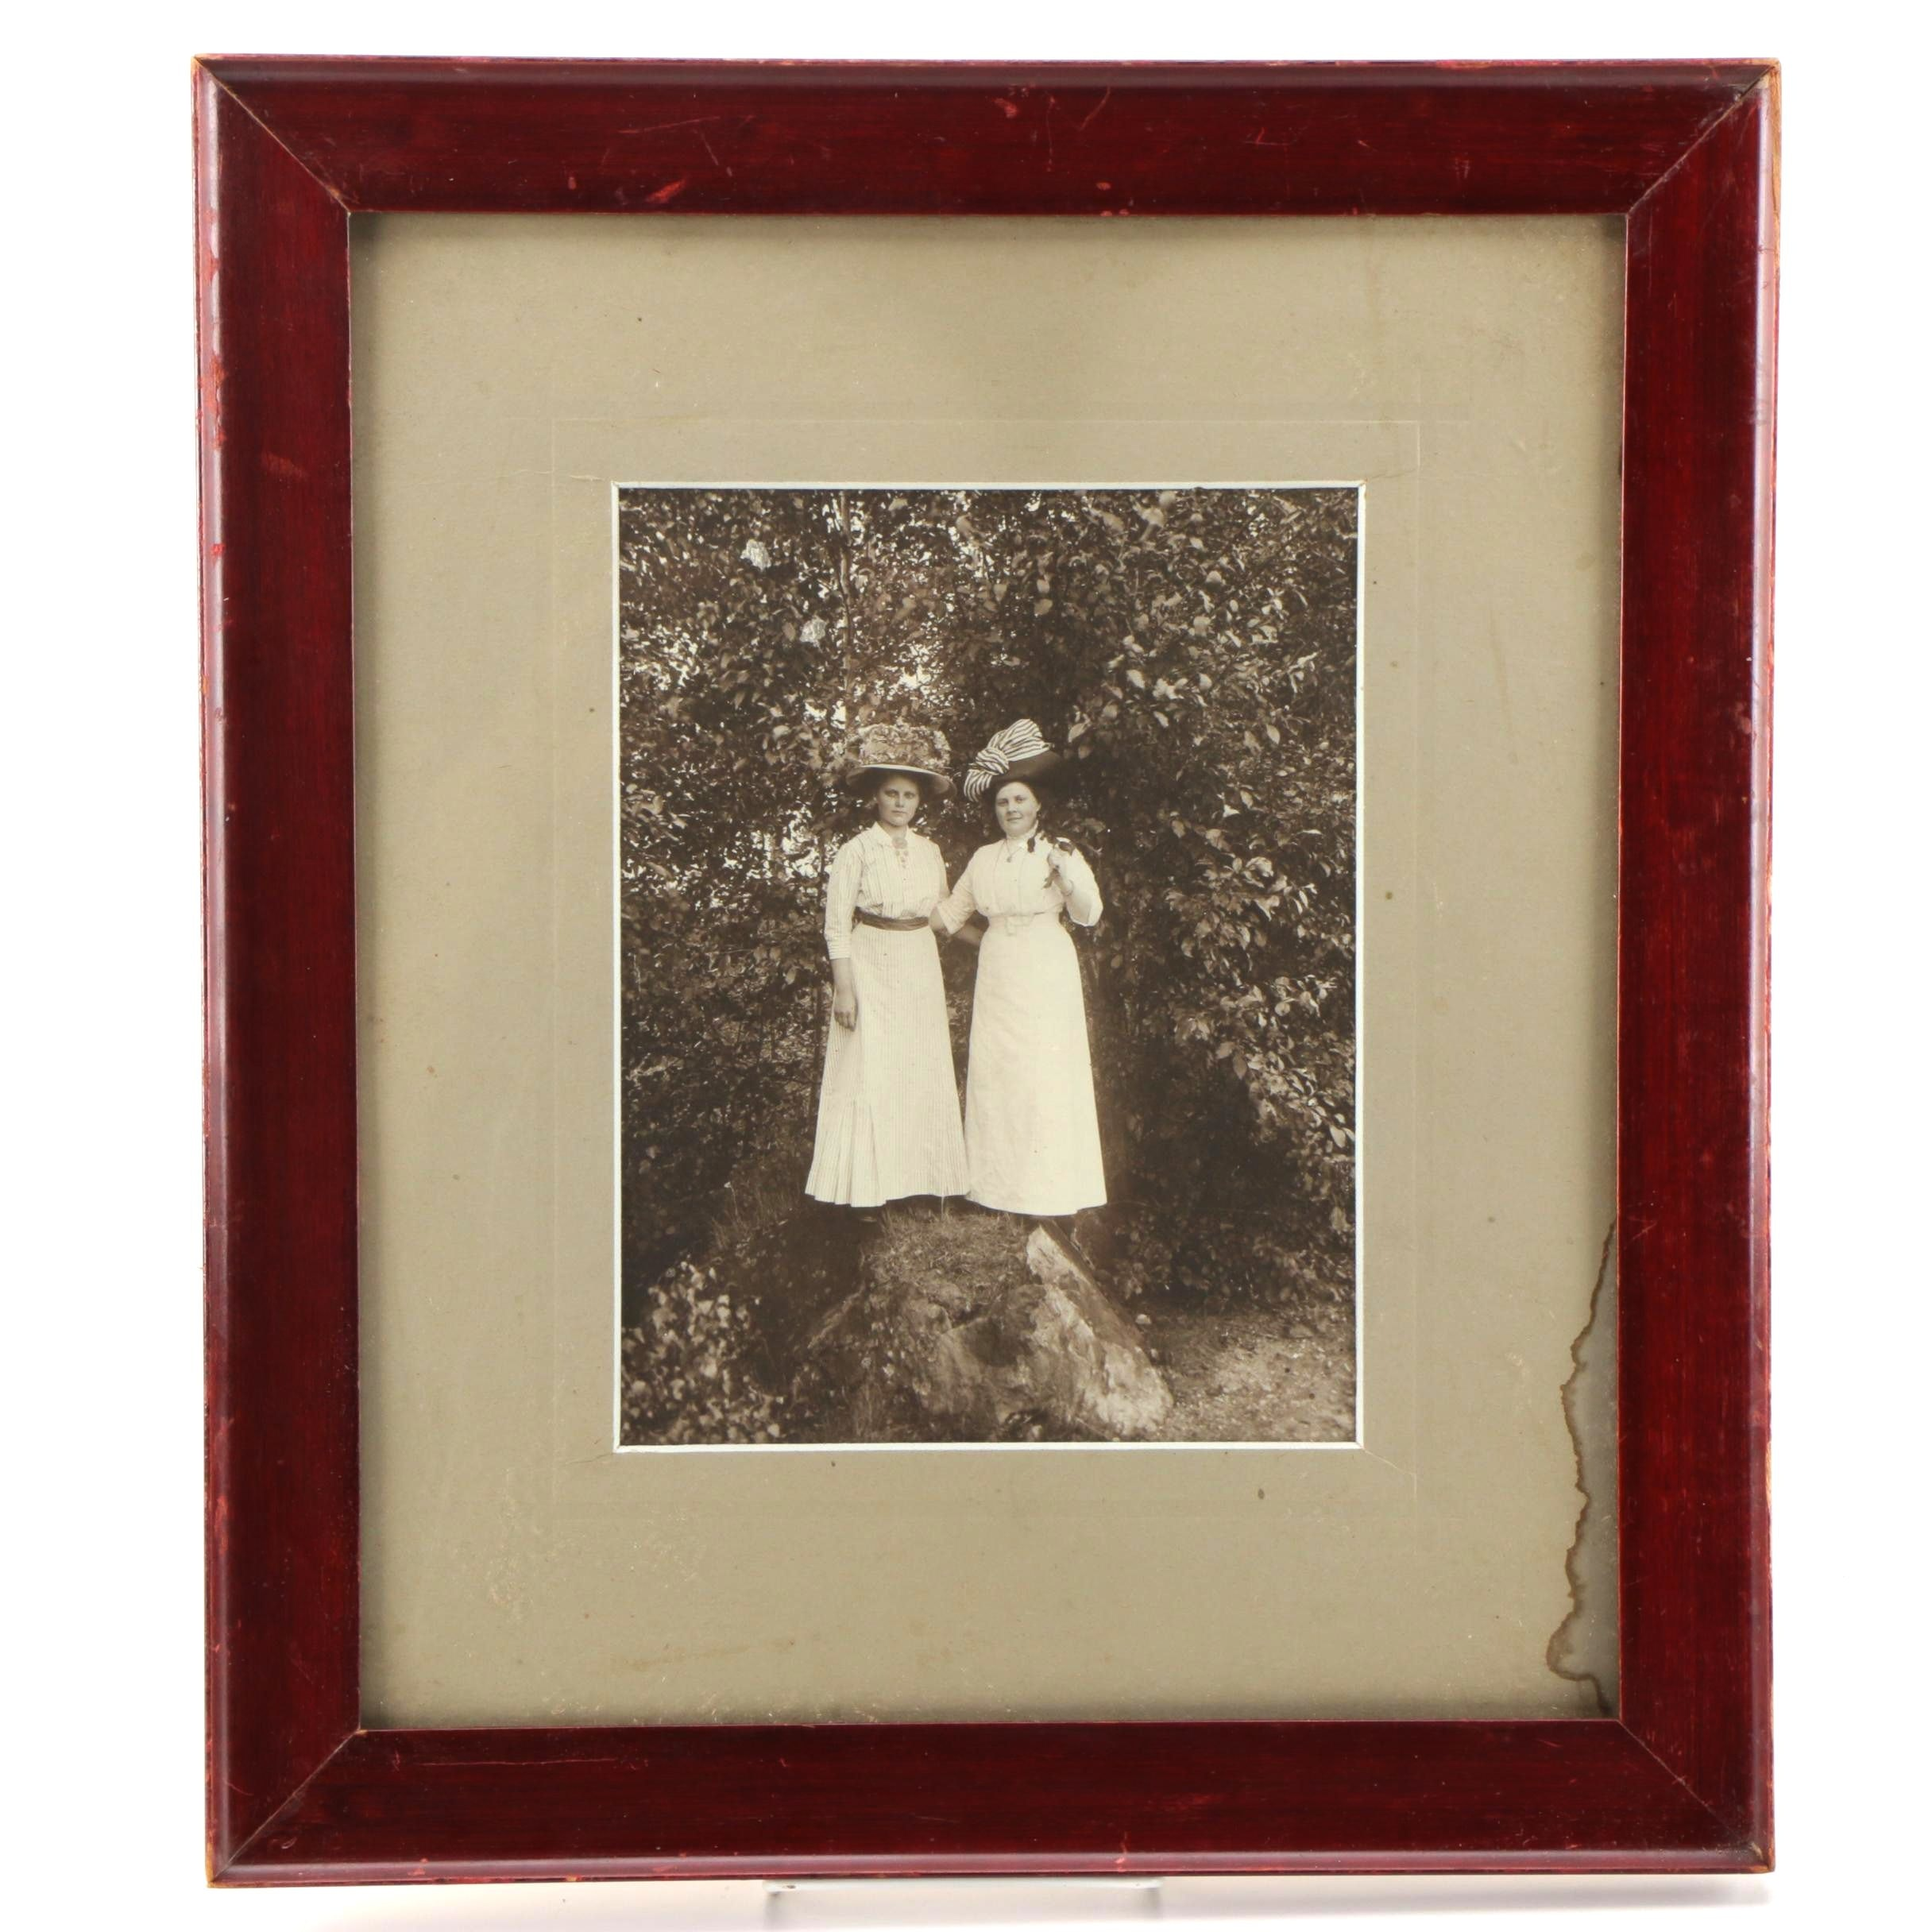 Turn of the Century Photograph of Two Victorian Era Women on a Hike